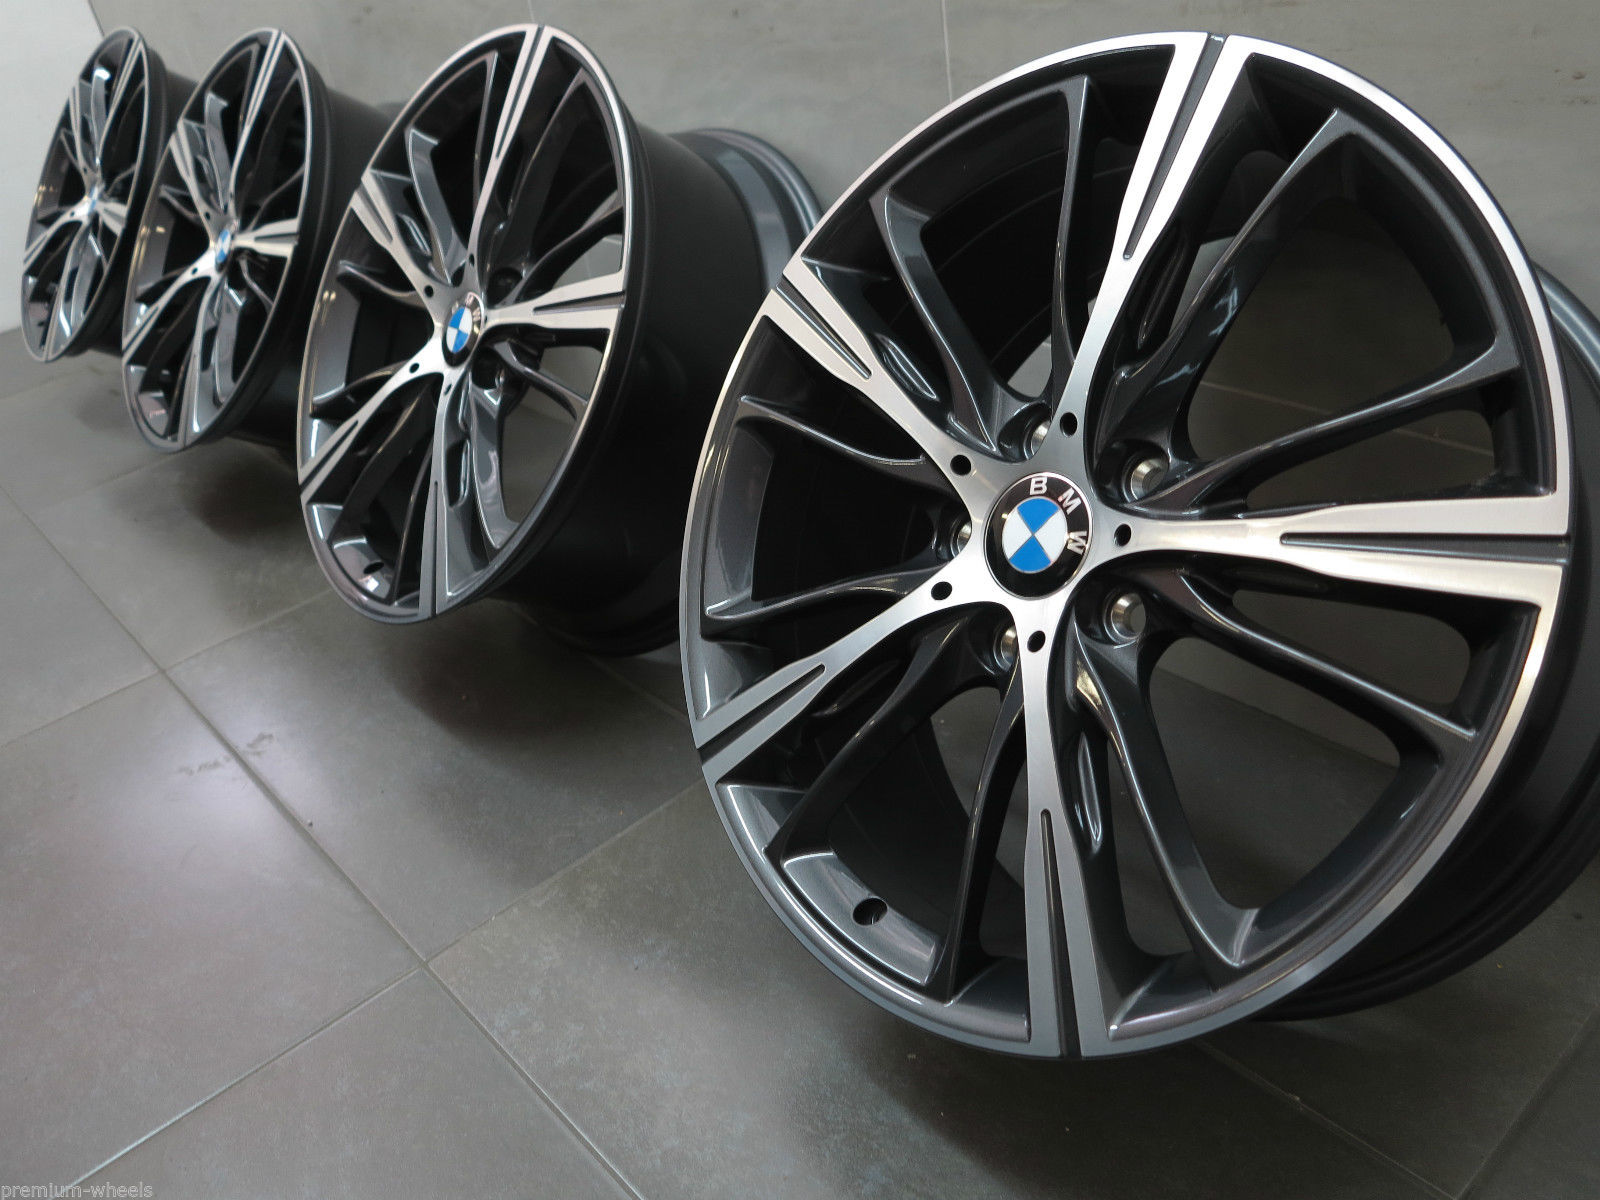 ferric bmw showthread p forums w zero attachment grey style oem styles attached rim images staggered